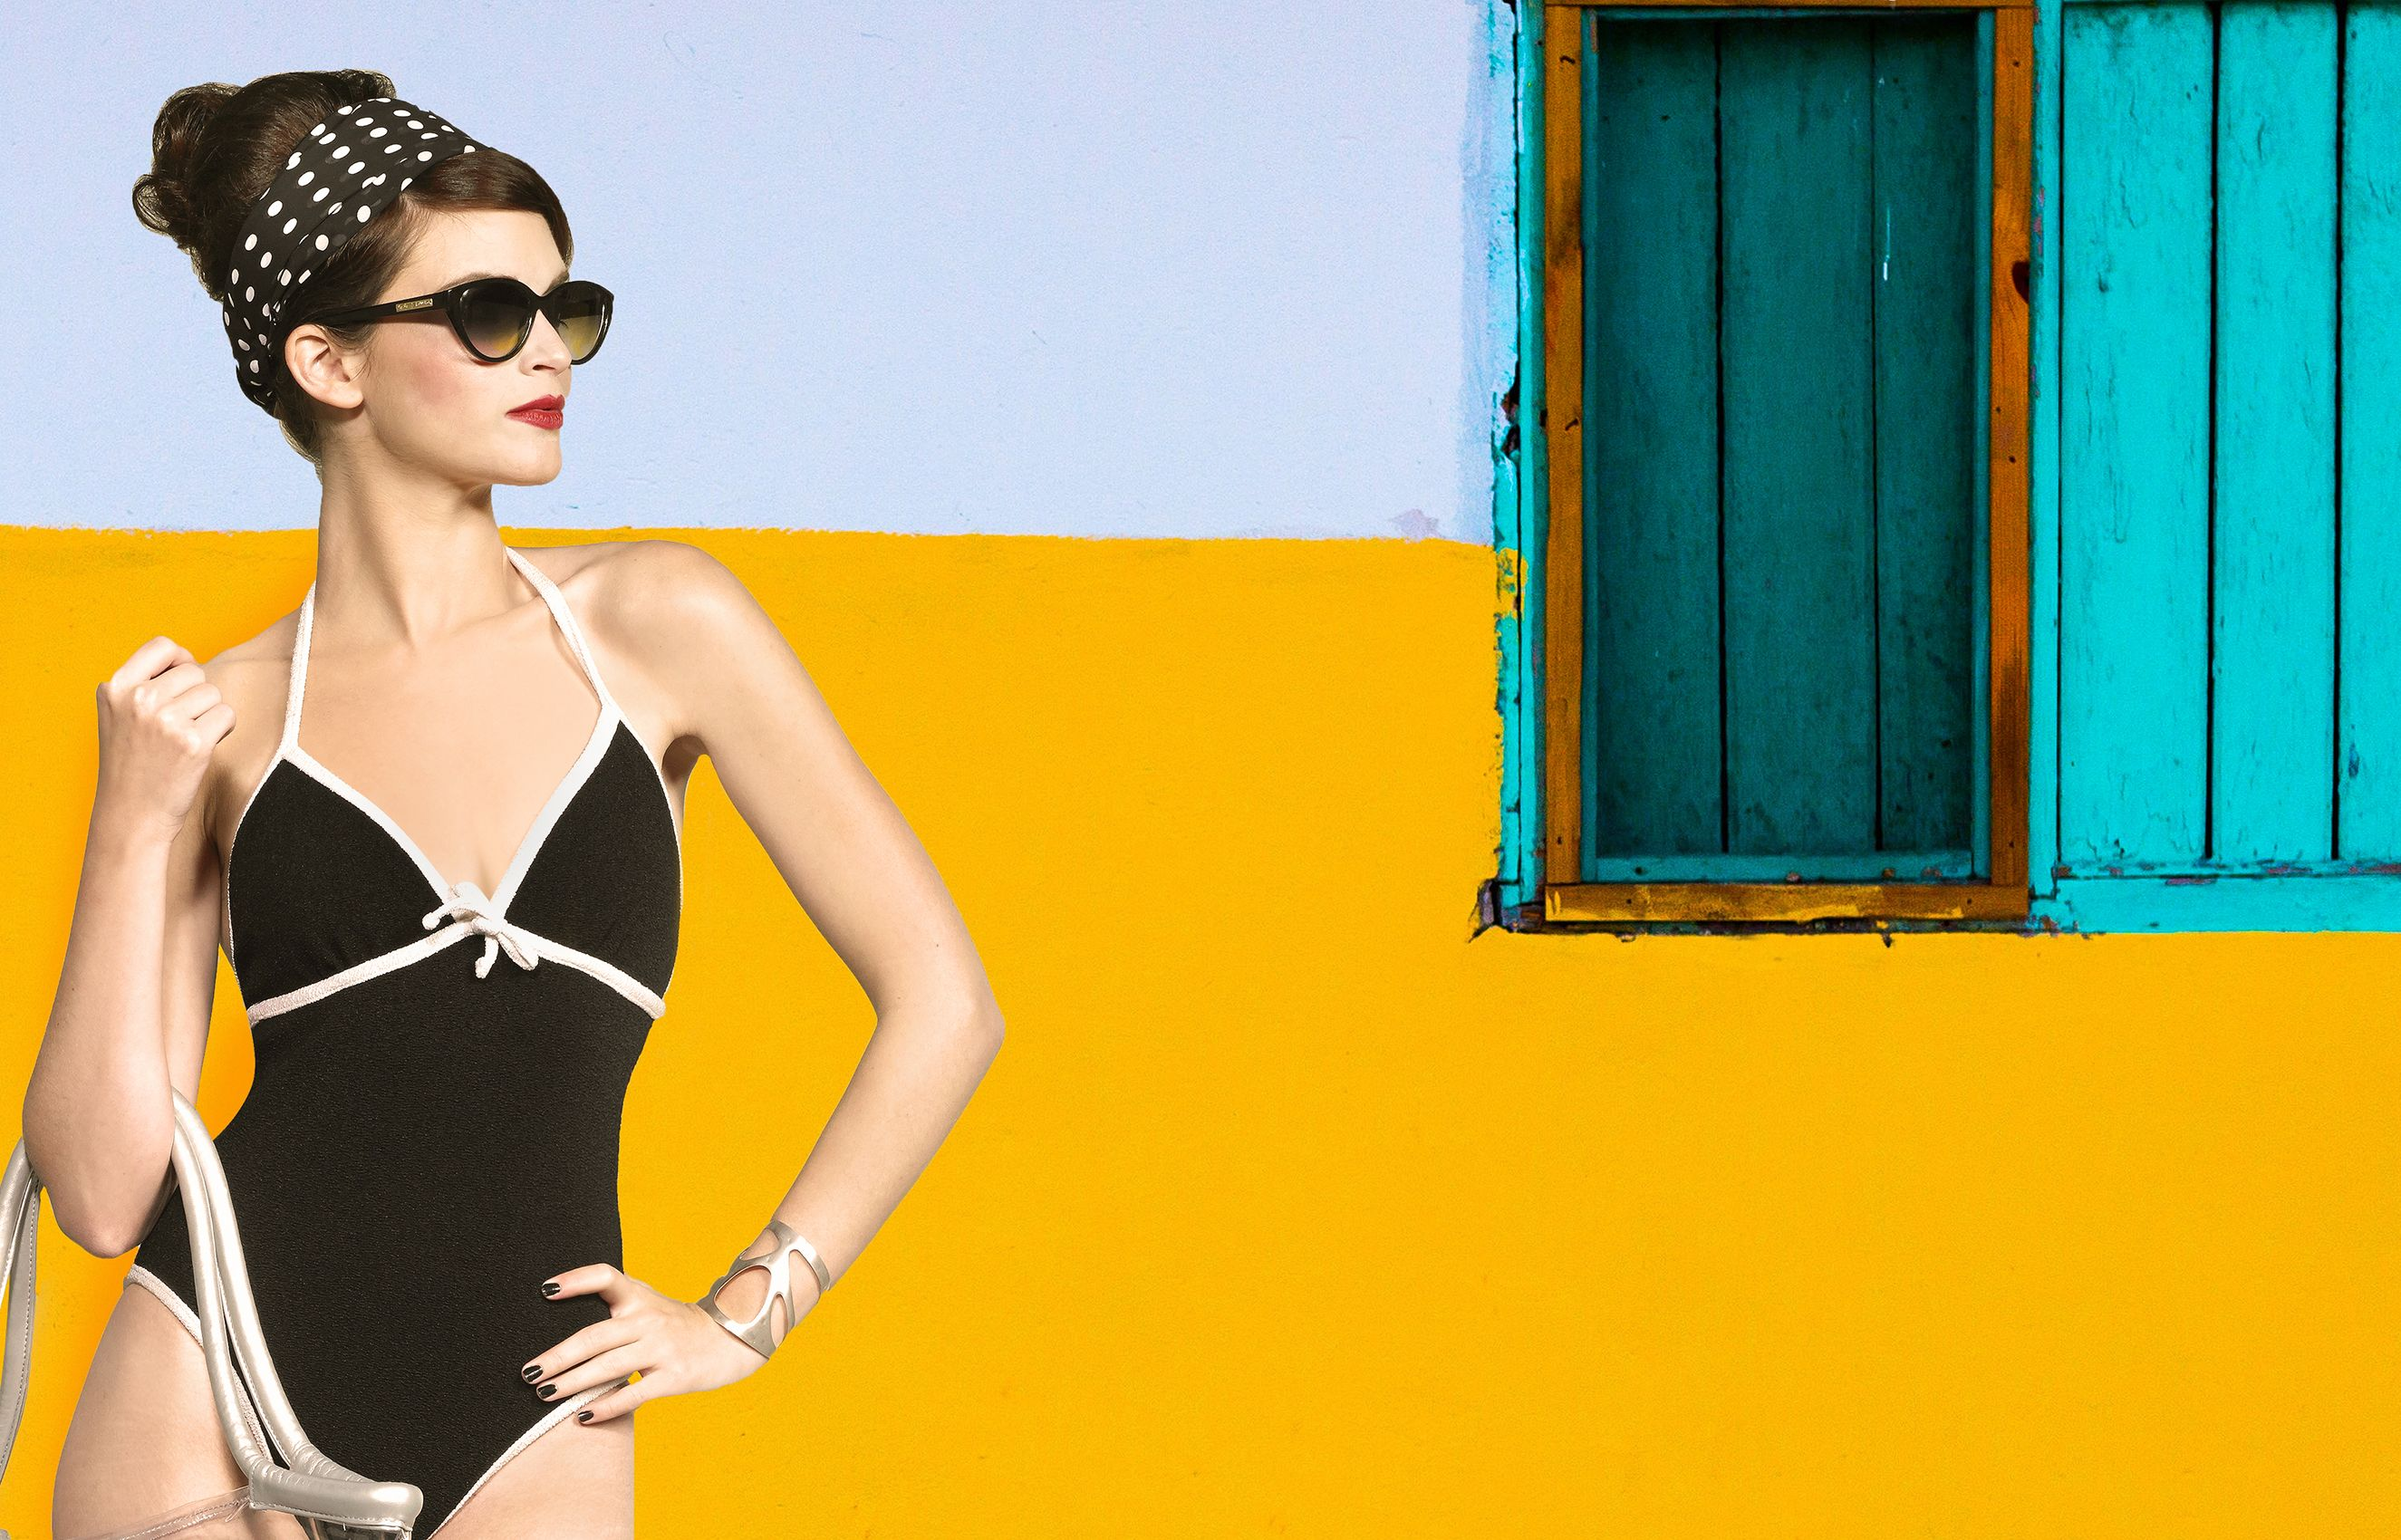 Model in swimsuit at yellow wall.jpg